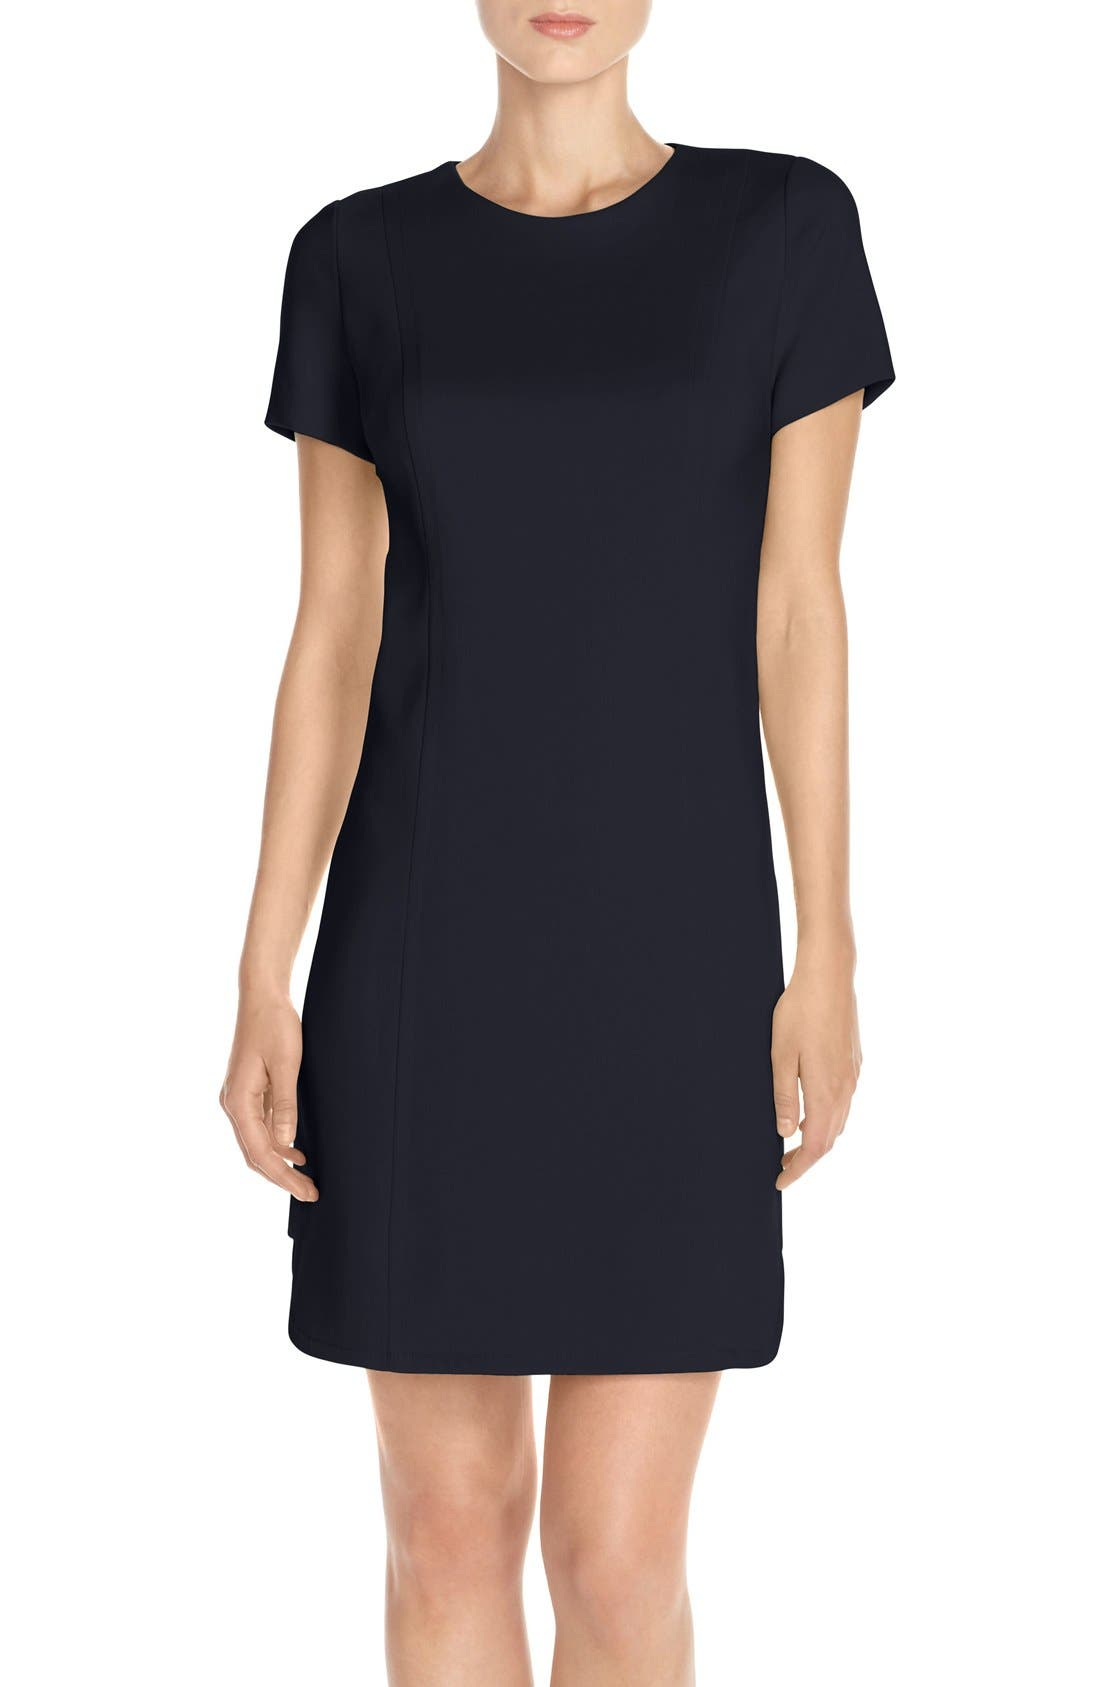 Main Image - Vince Camuto Seamed Shift Dress (Regular & Petite)